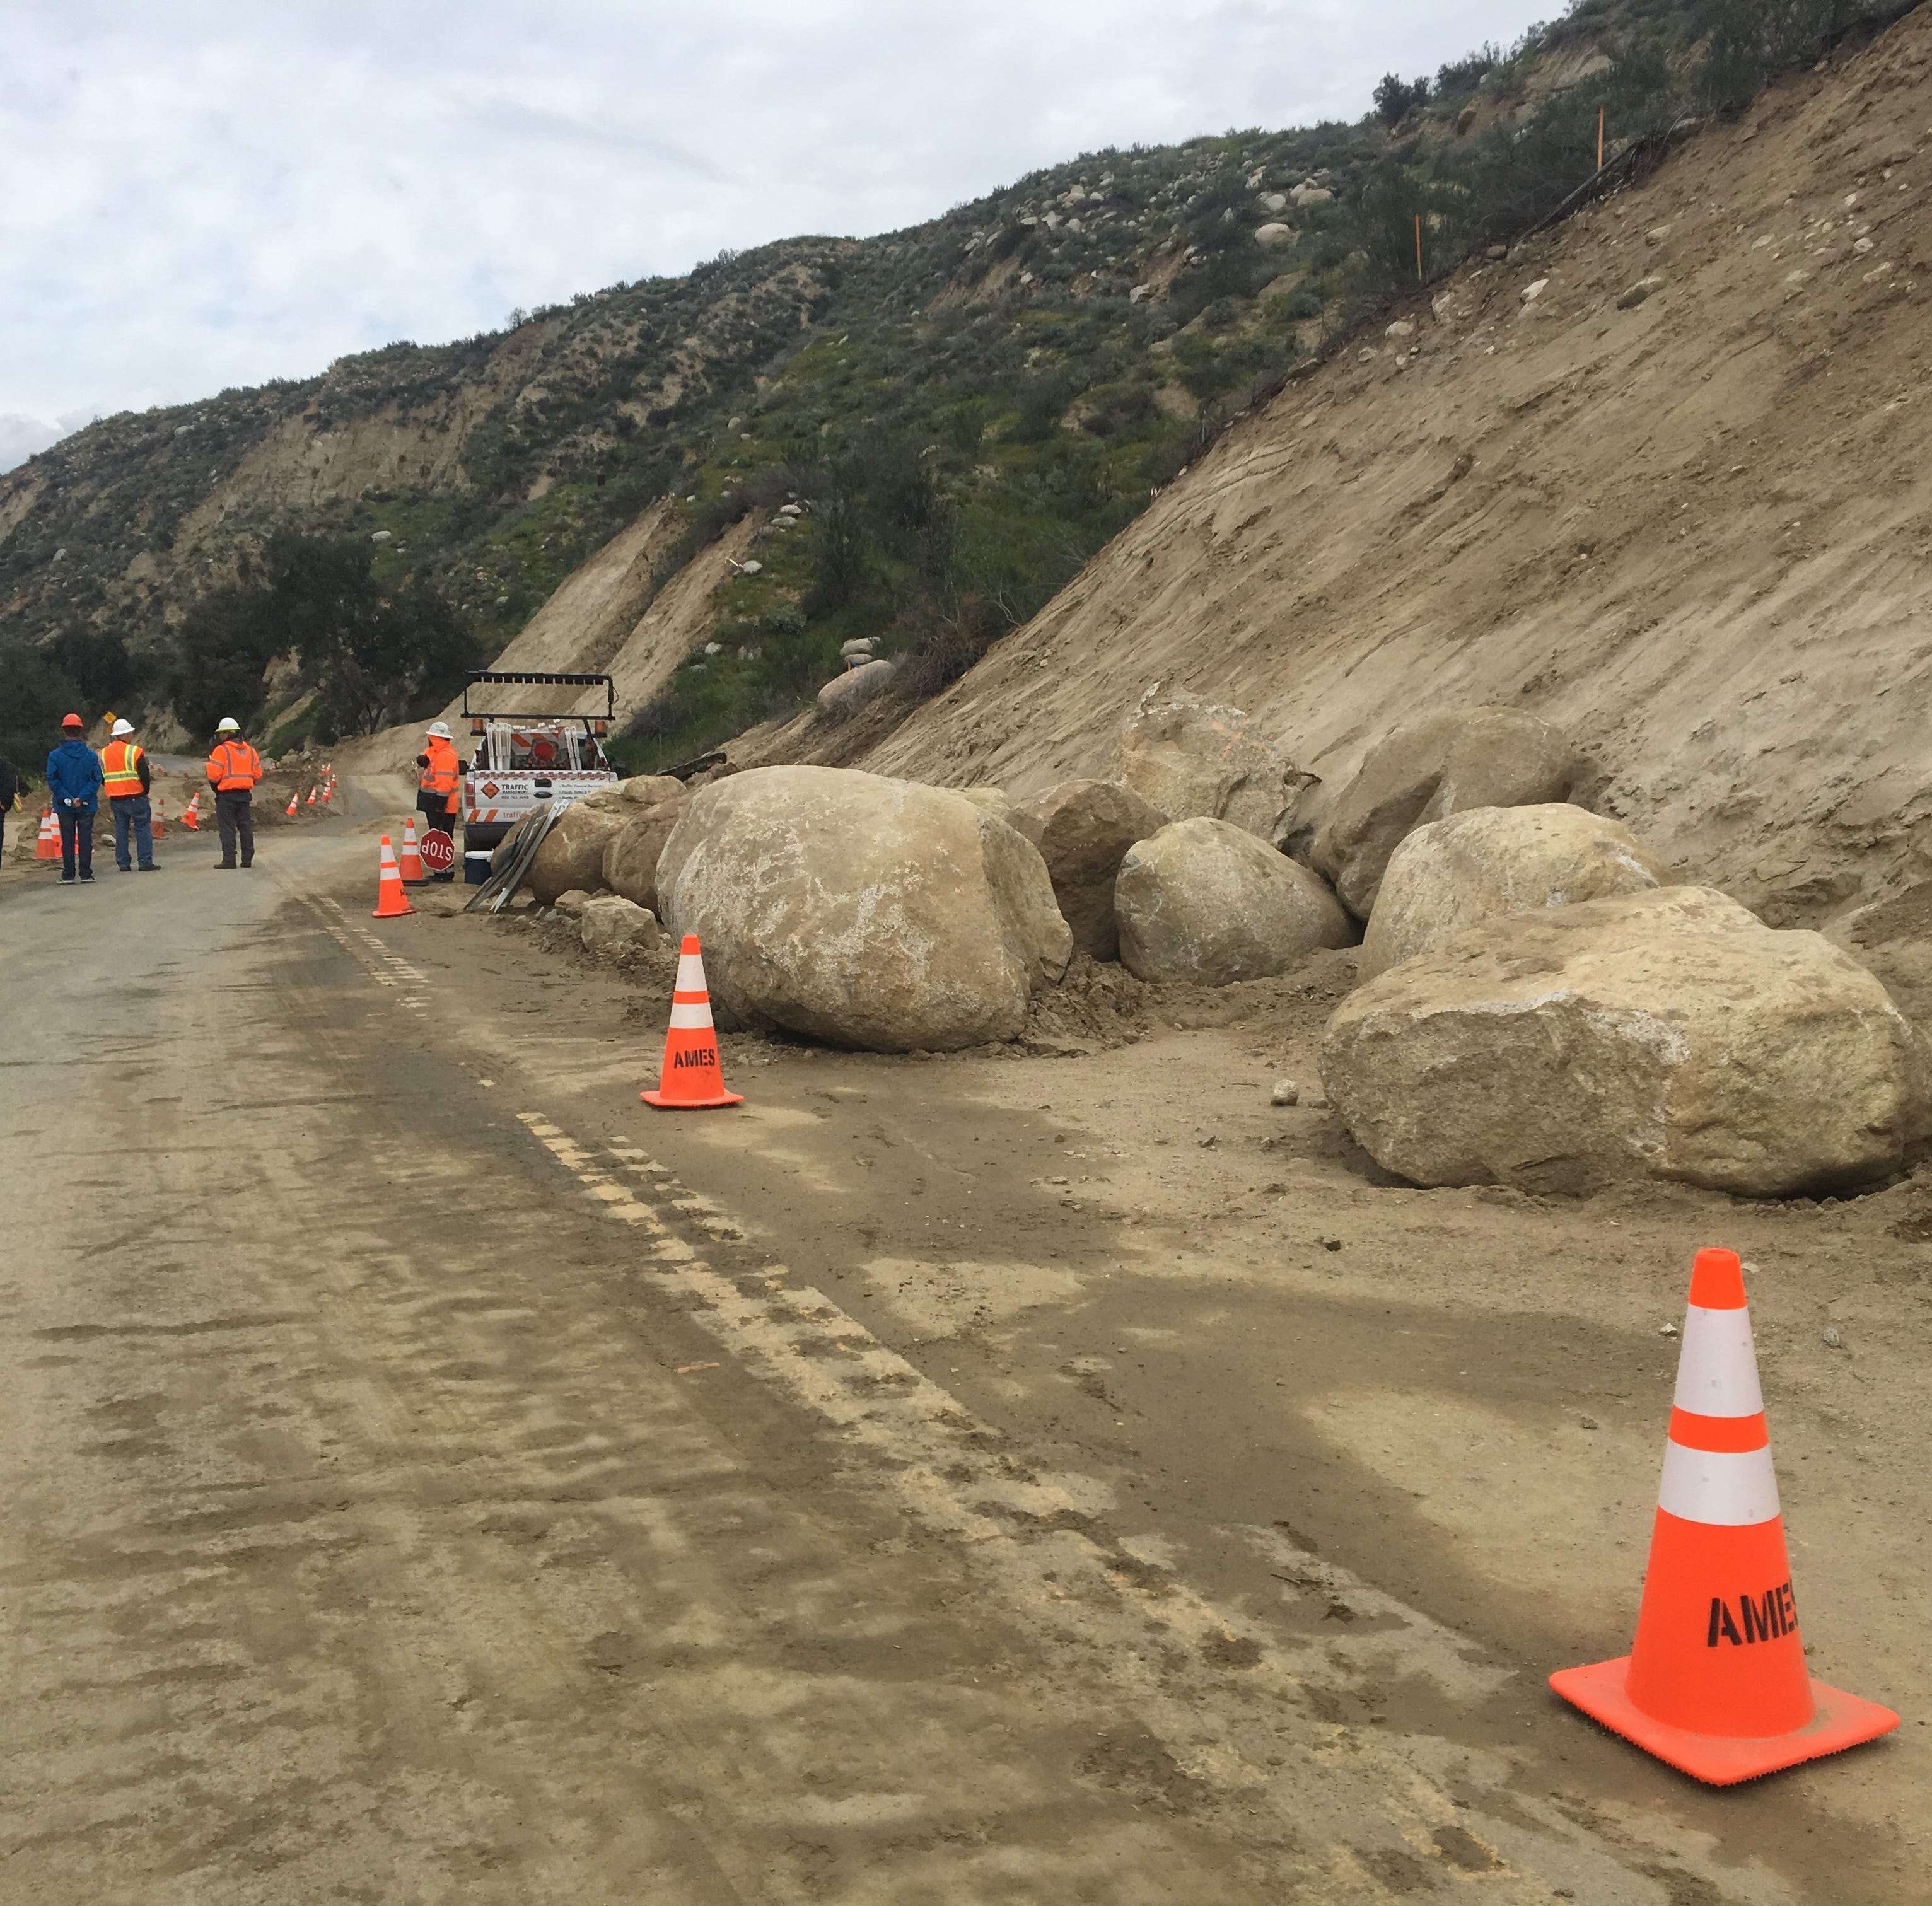 Highway 74 to get escorted access between Idyllwild and Hemet. Here's how the road looks now